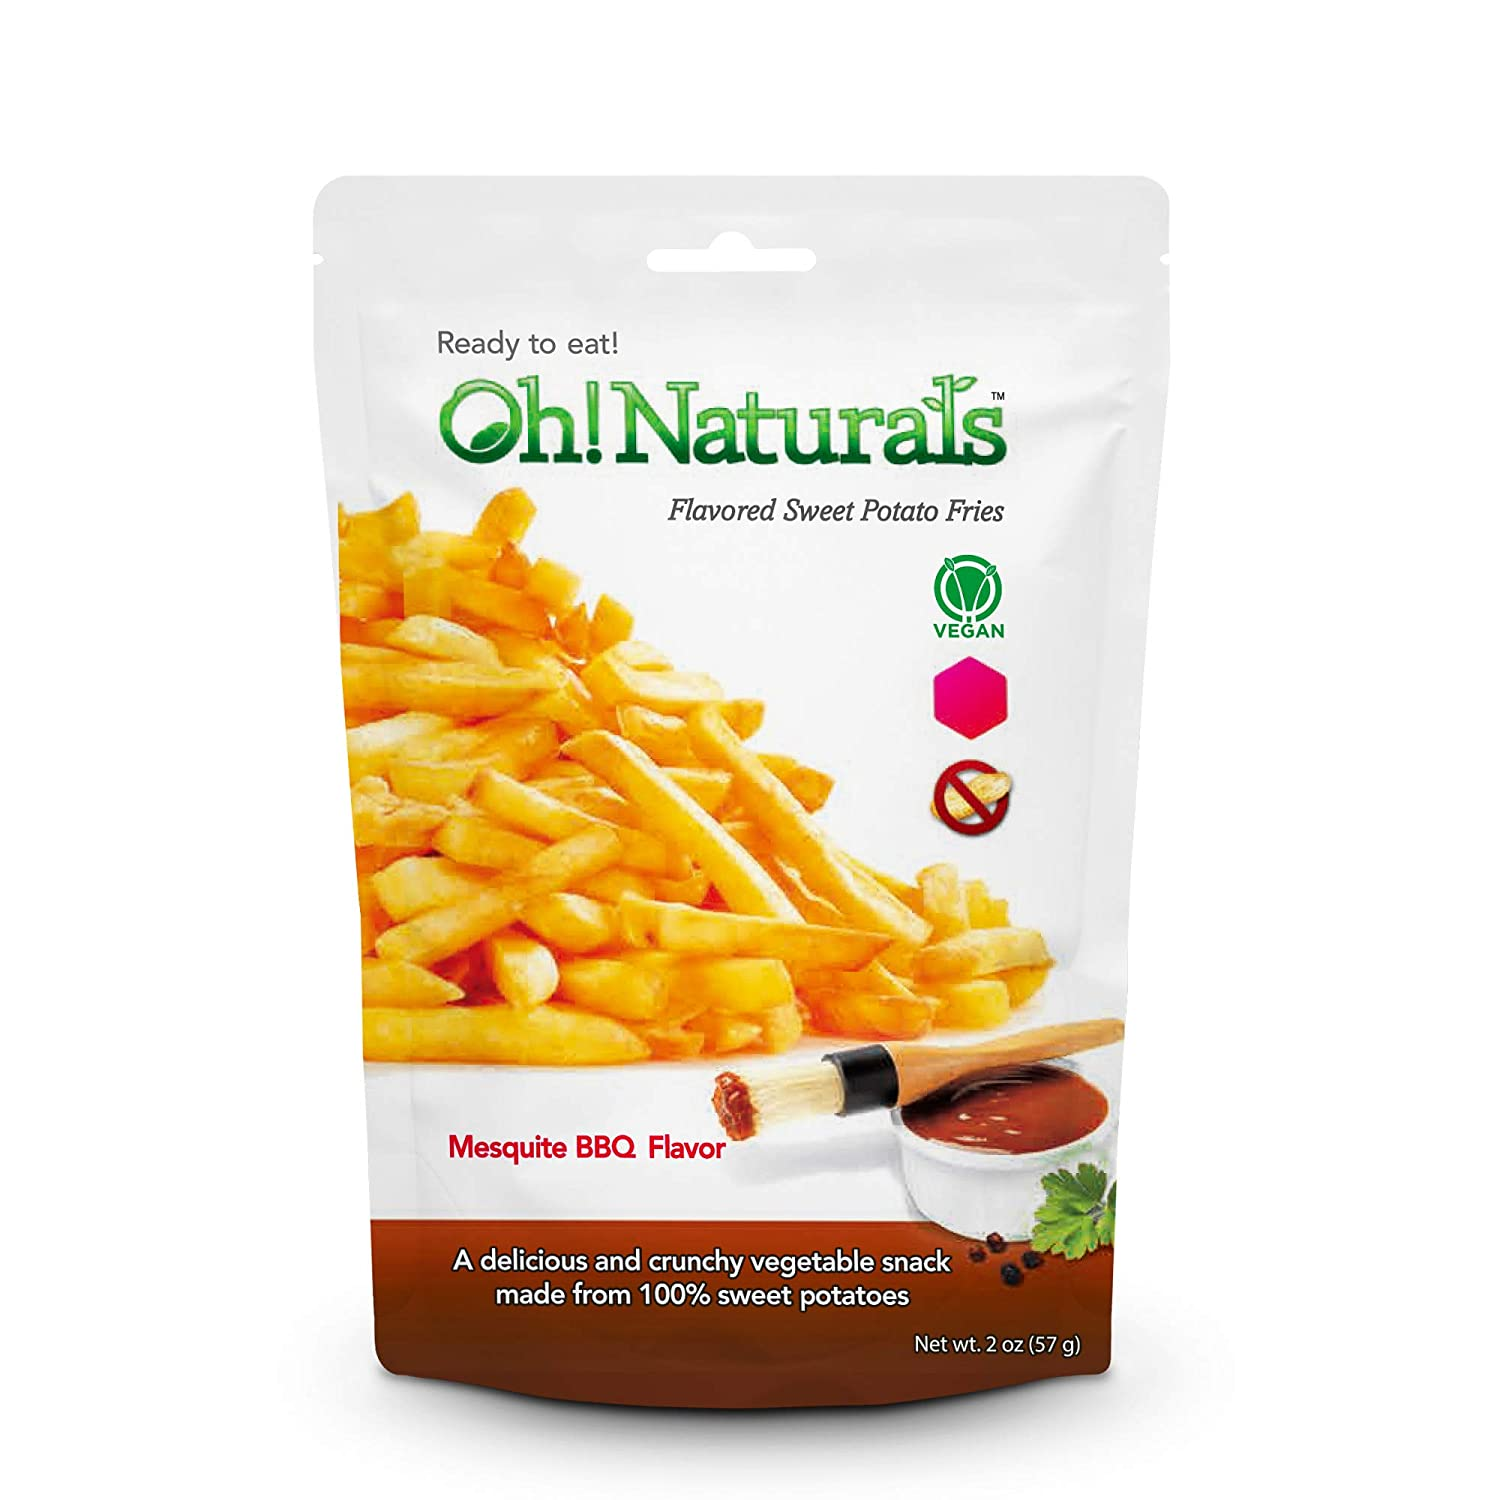 Oh! Naturals Mesquite BBQ Sweet Potato Fries, Crispy, Crunchy, Delicious Vegetable Snack, French Fry Shaped Chips, 4 x 3 oz Packs